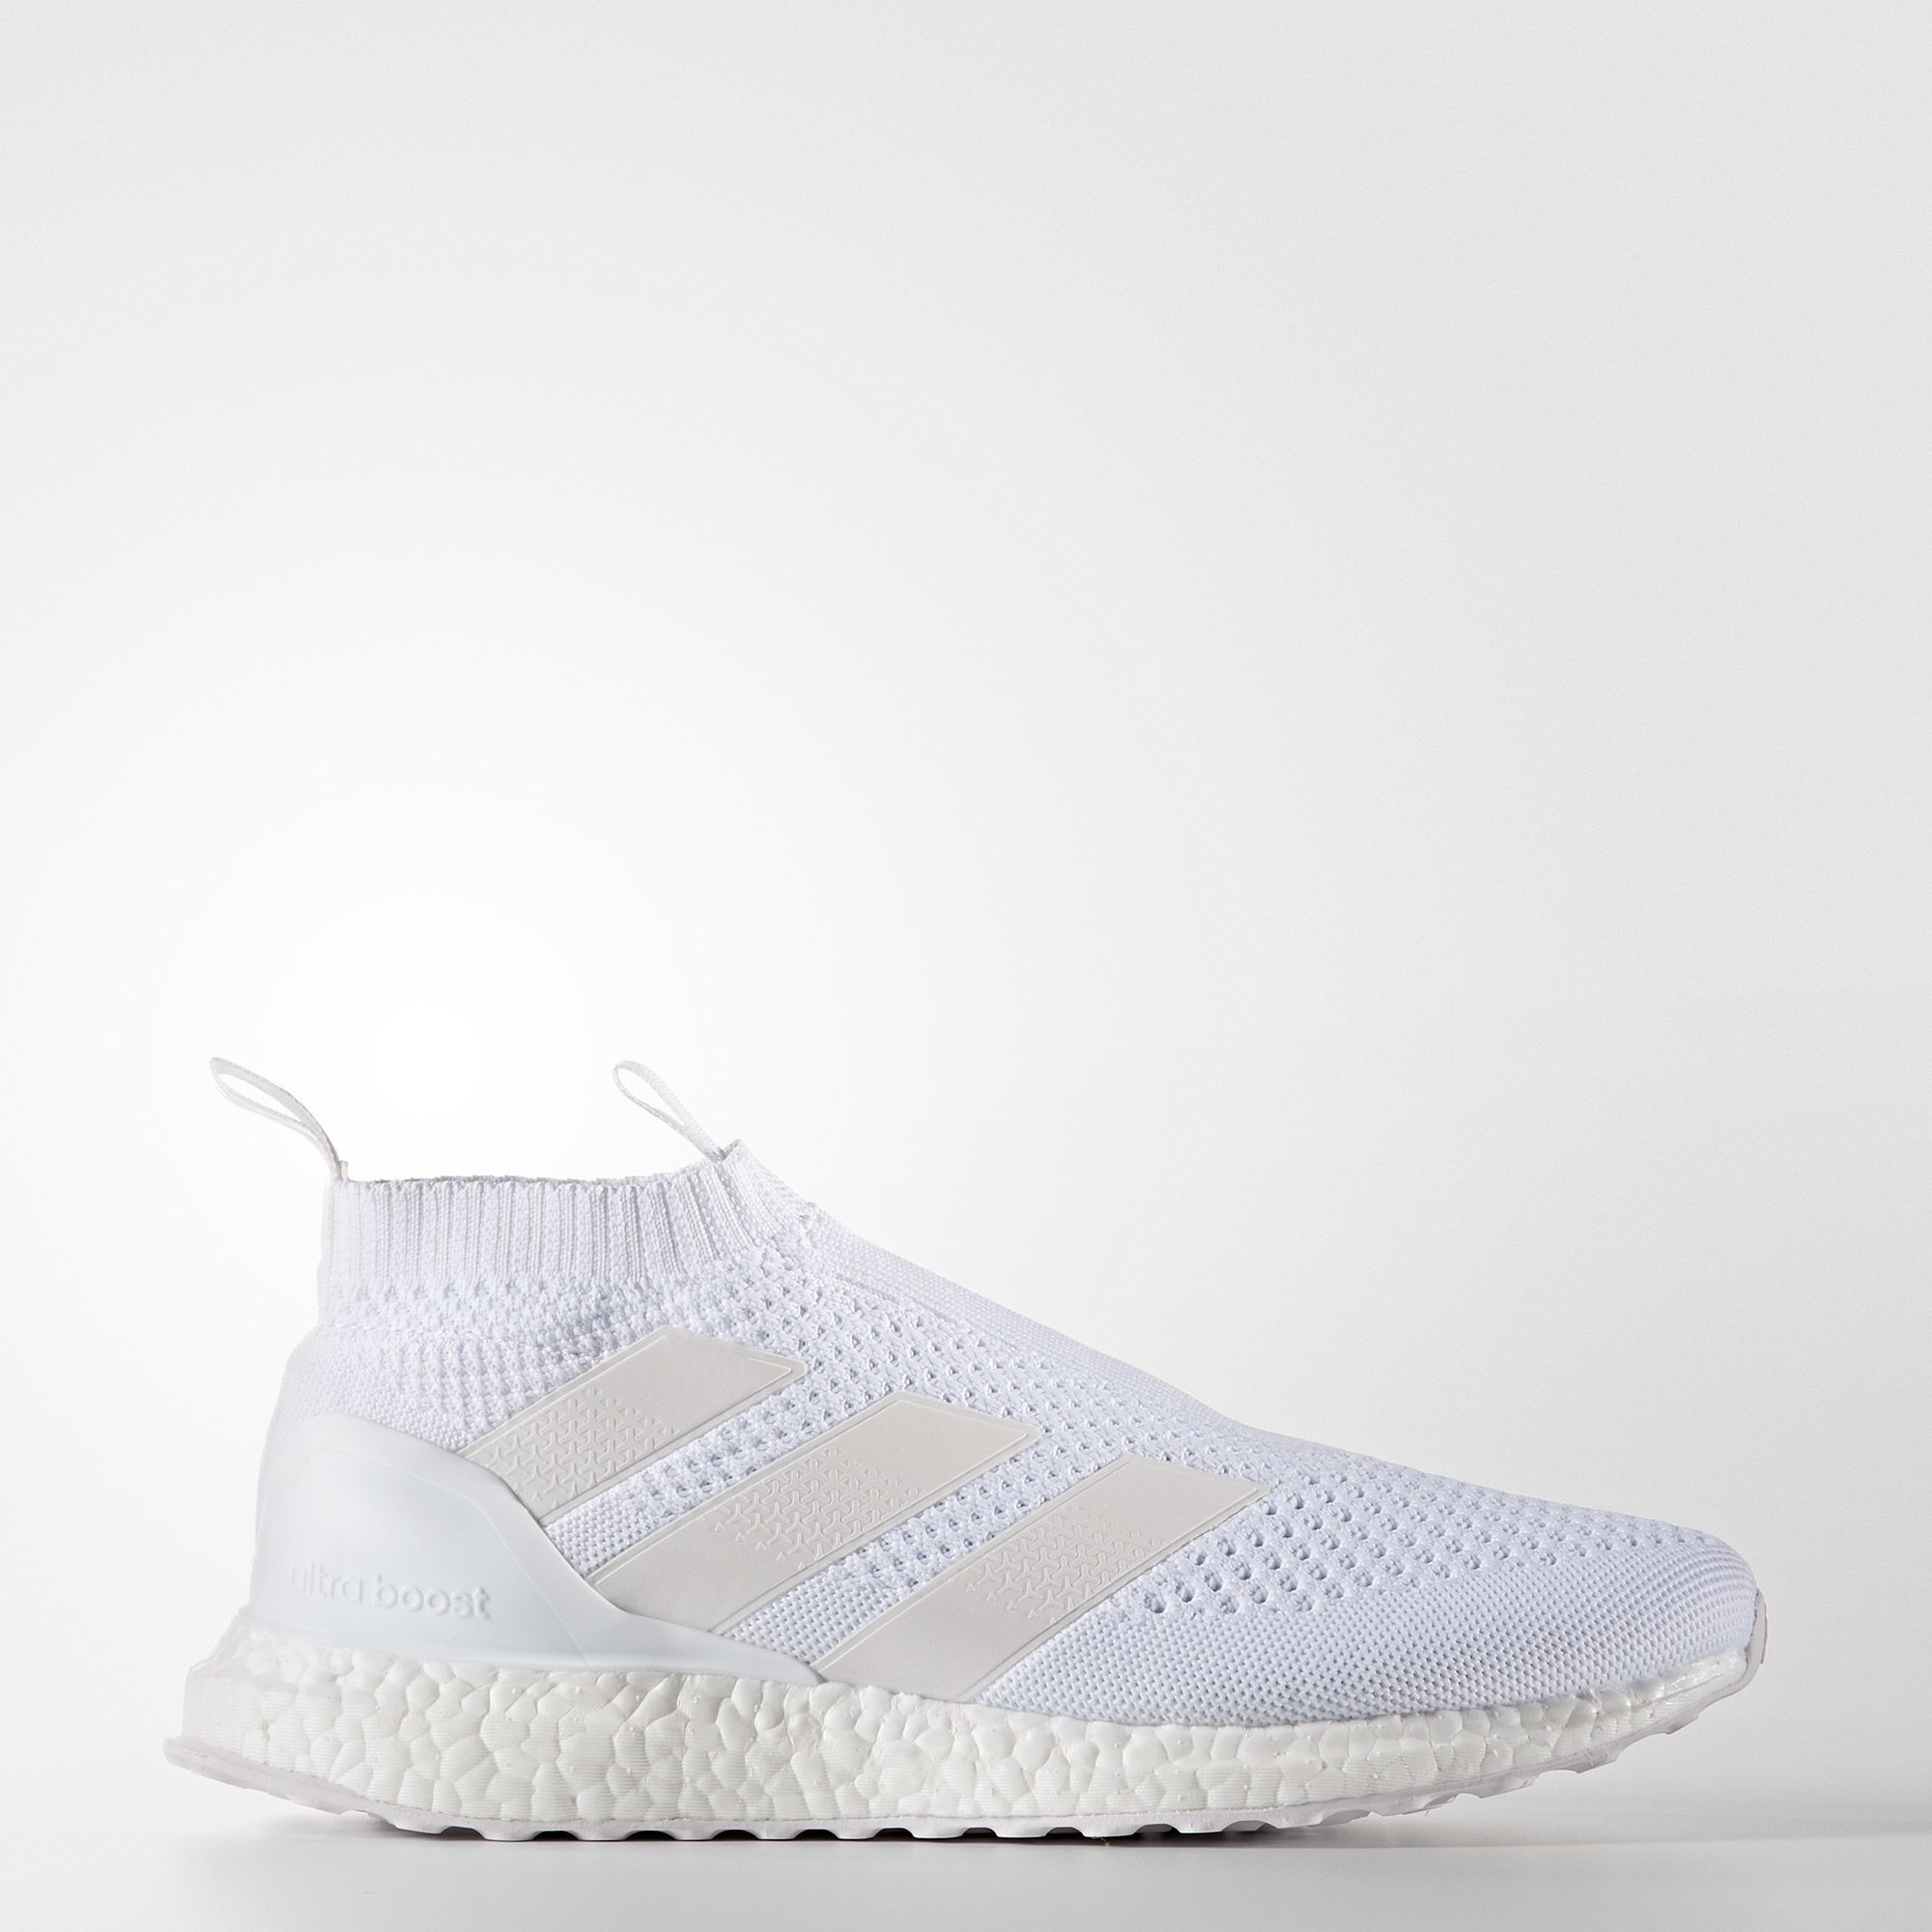 adidas ace 16 purecontrol ultra boost schuh sports